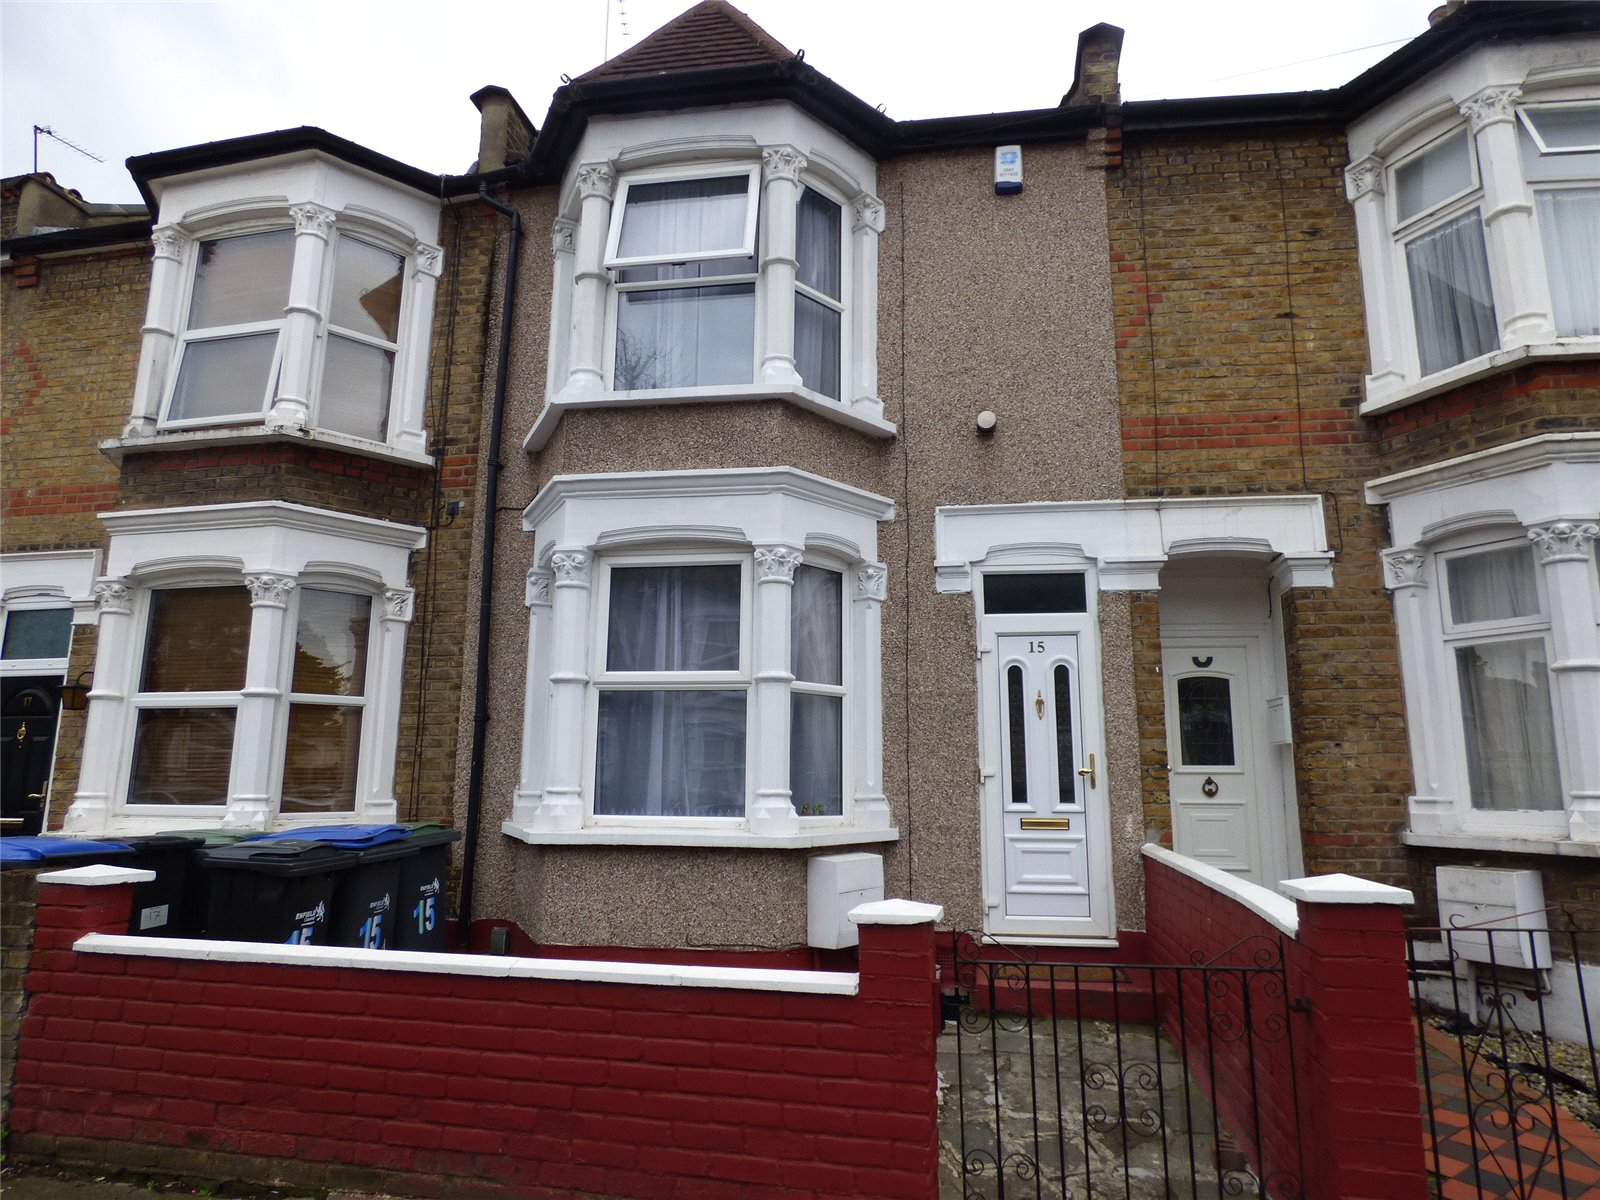 Dysons Road, Edmonton, London, N18